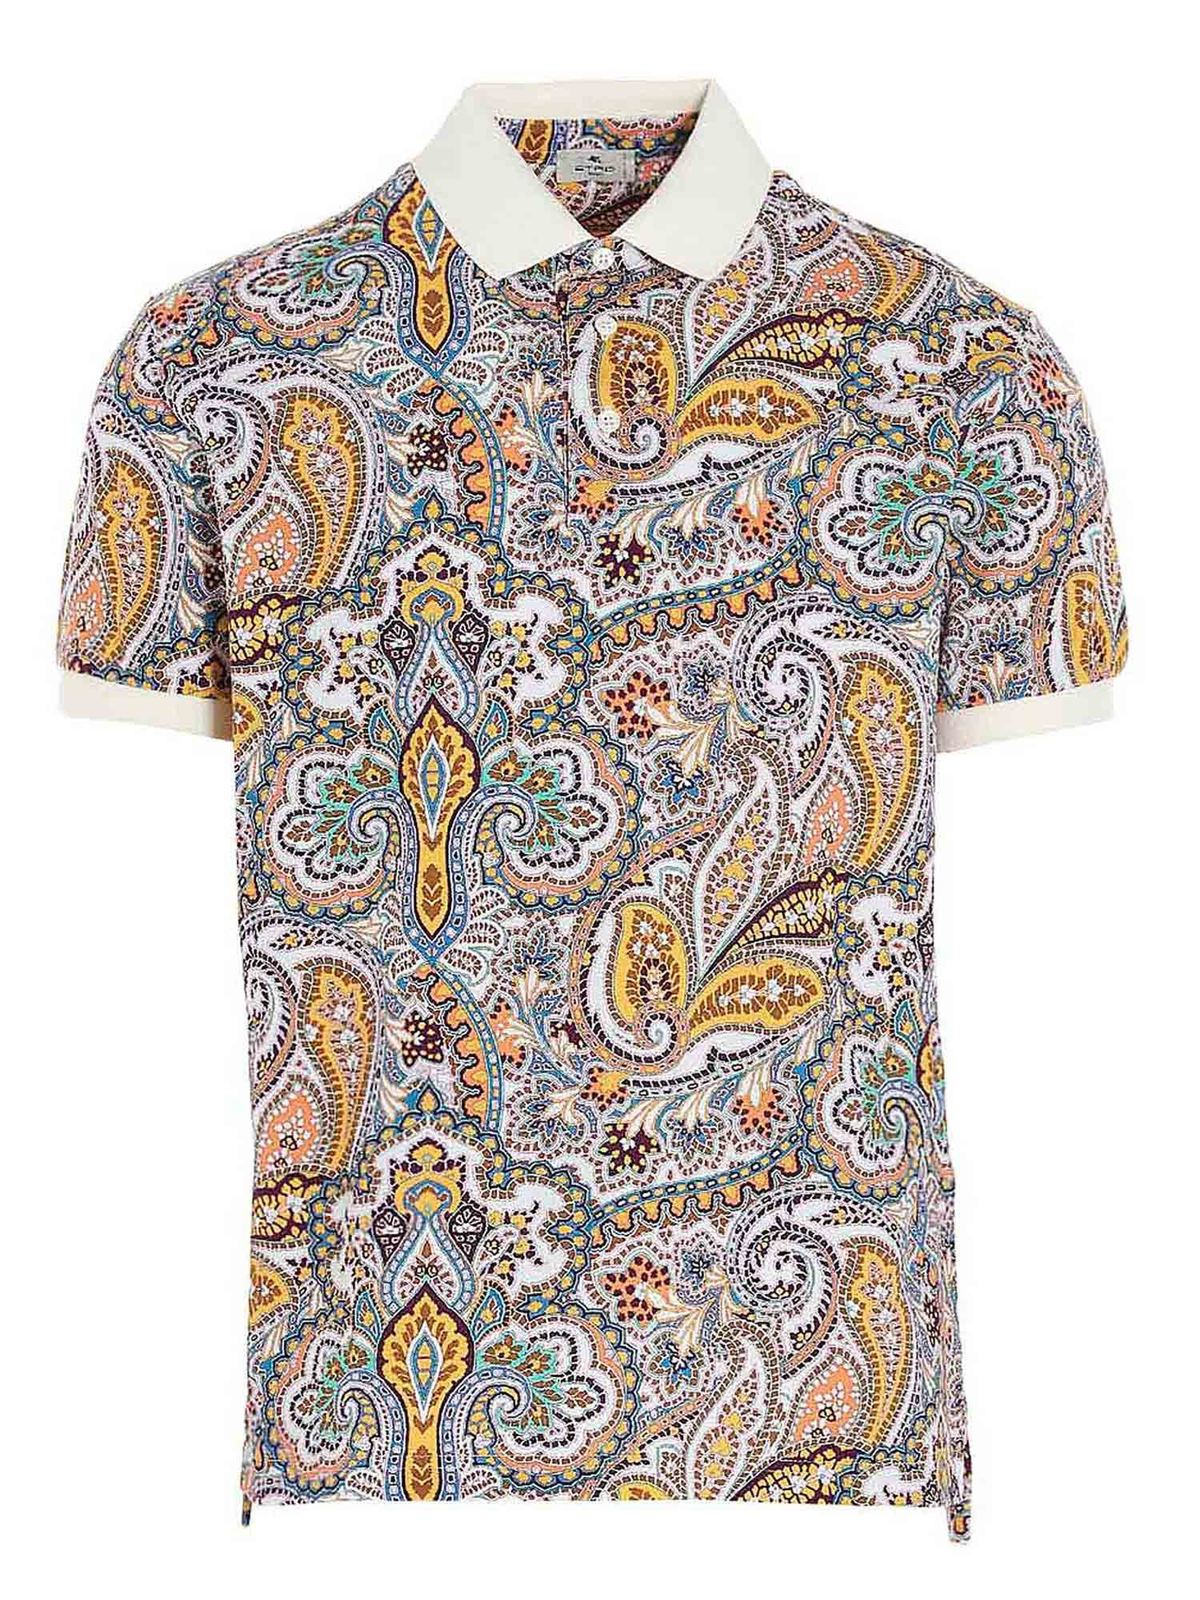 Etro PAISLEY POLO SHIRT IN MULTICOLOR